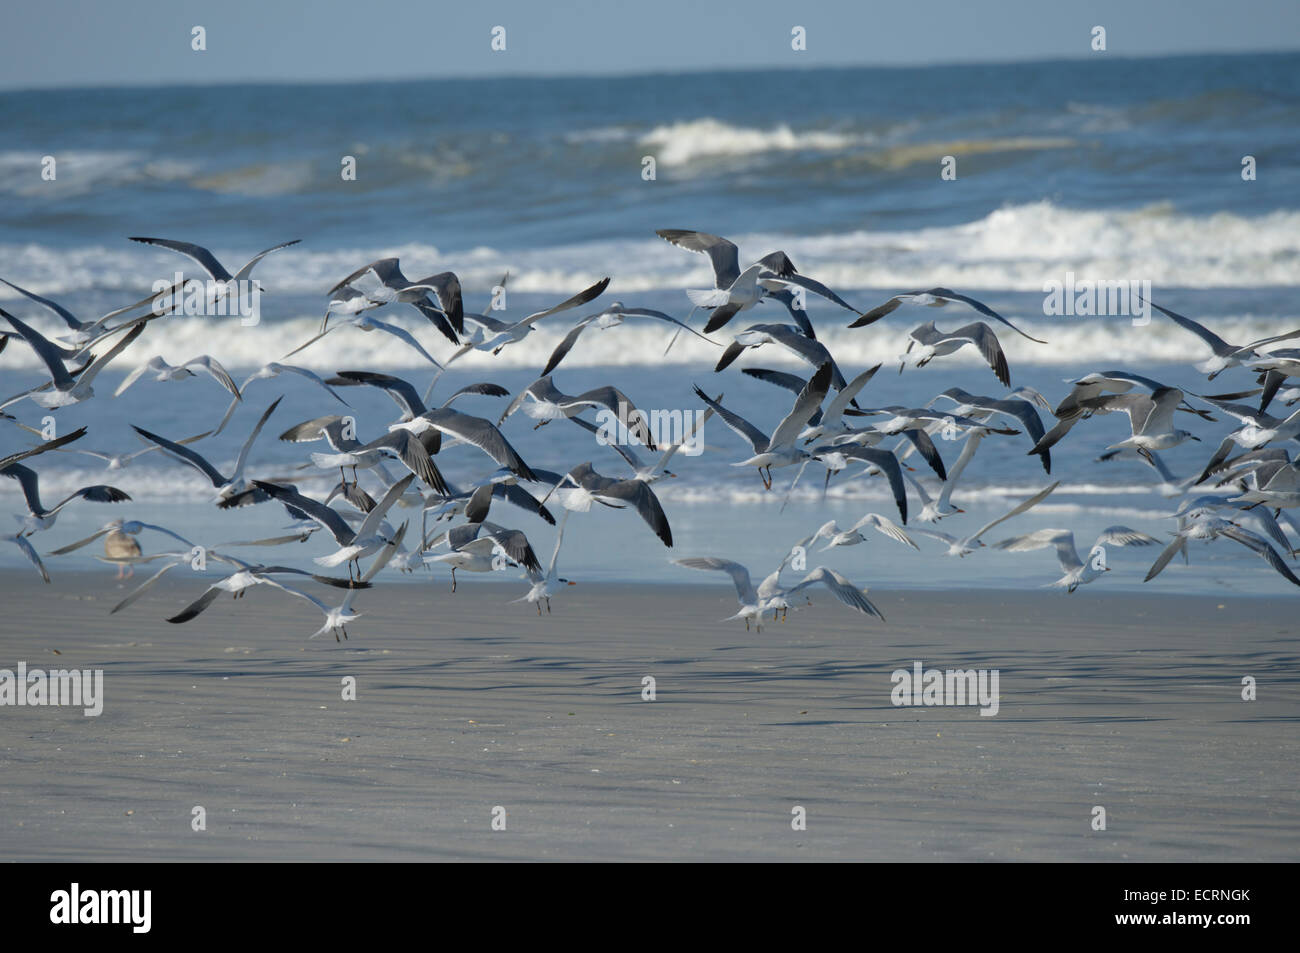 Gulls and Tern Shore birds fly from beach at Lighthouse Point Park, Ponce Inlet, Volusia County Florida USA - Stock Image